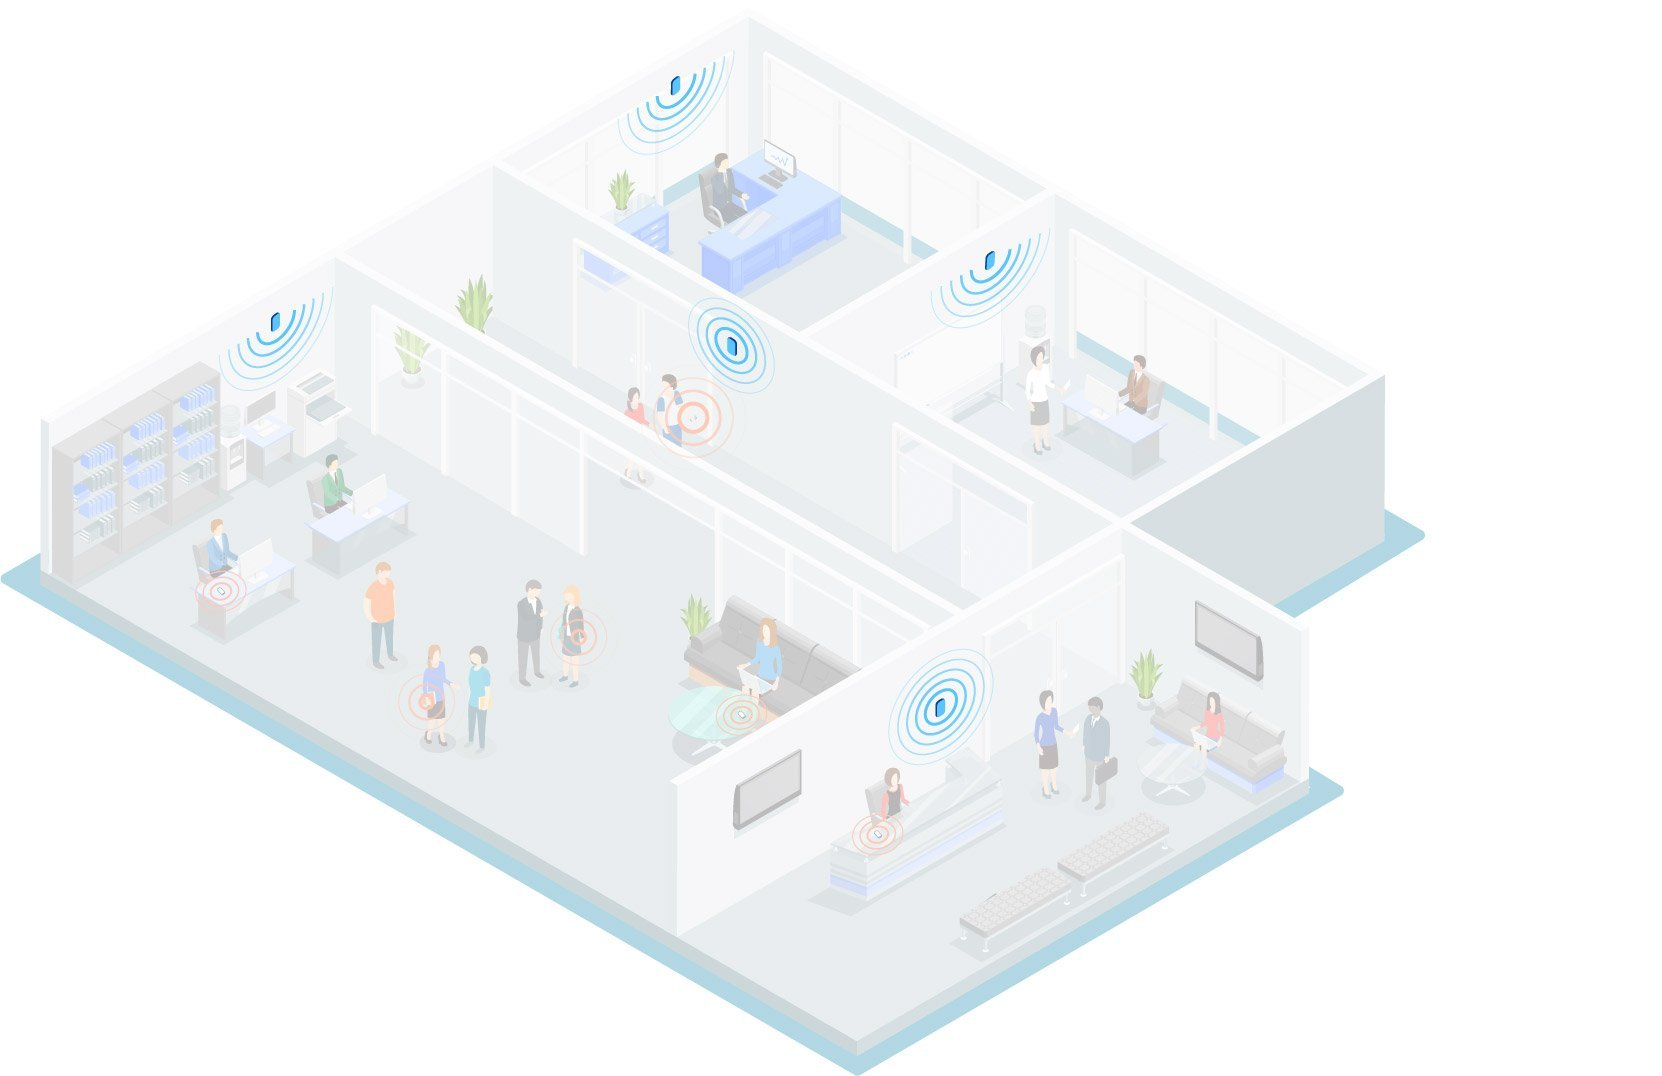 BLE beacons for indoor positioning in any venue